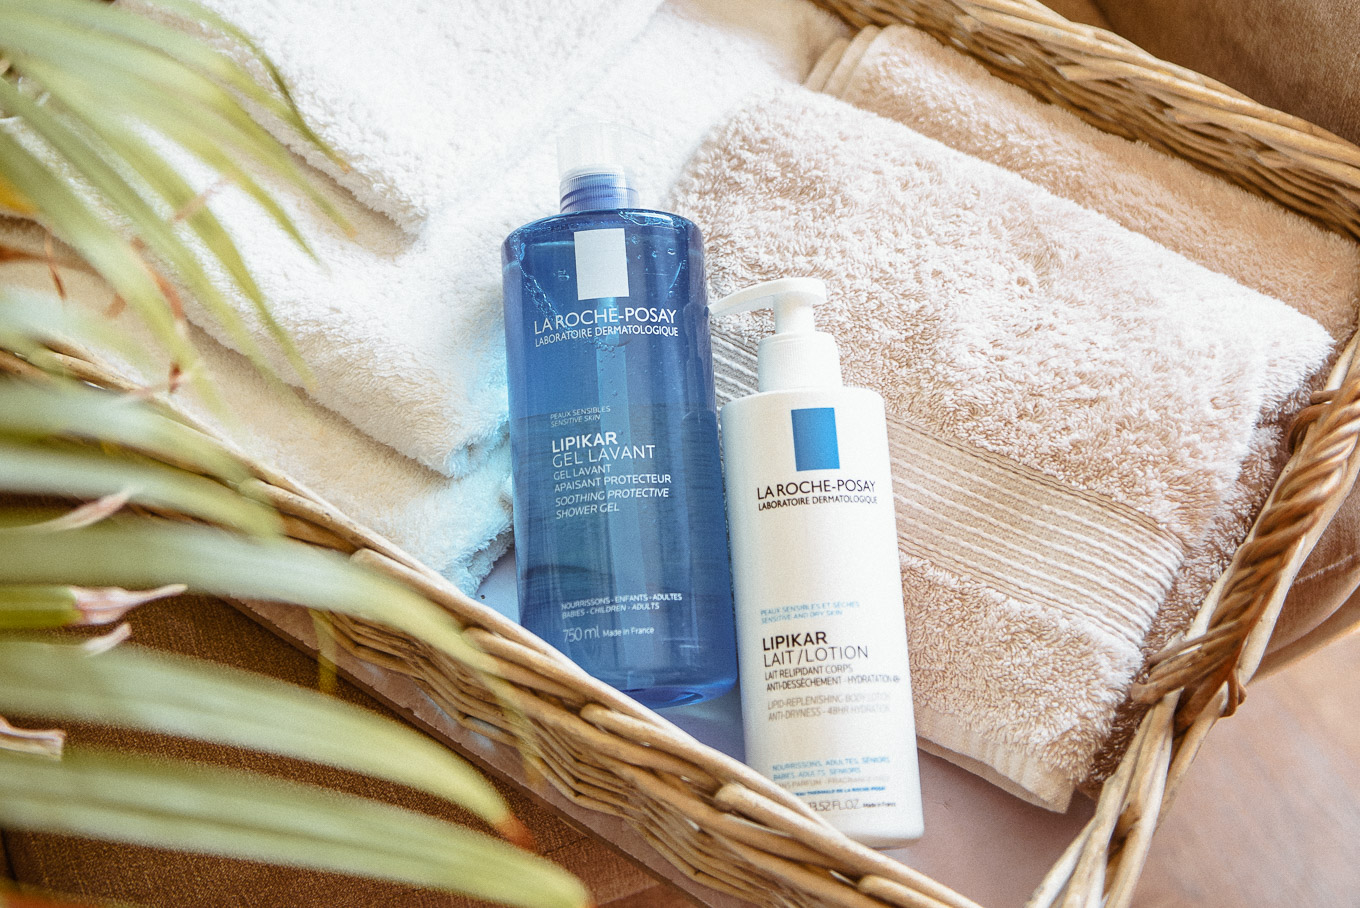 La Roche-Posay for dry skin